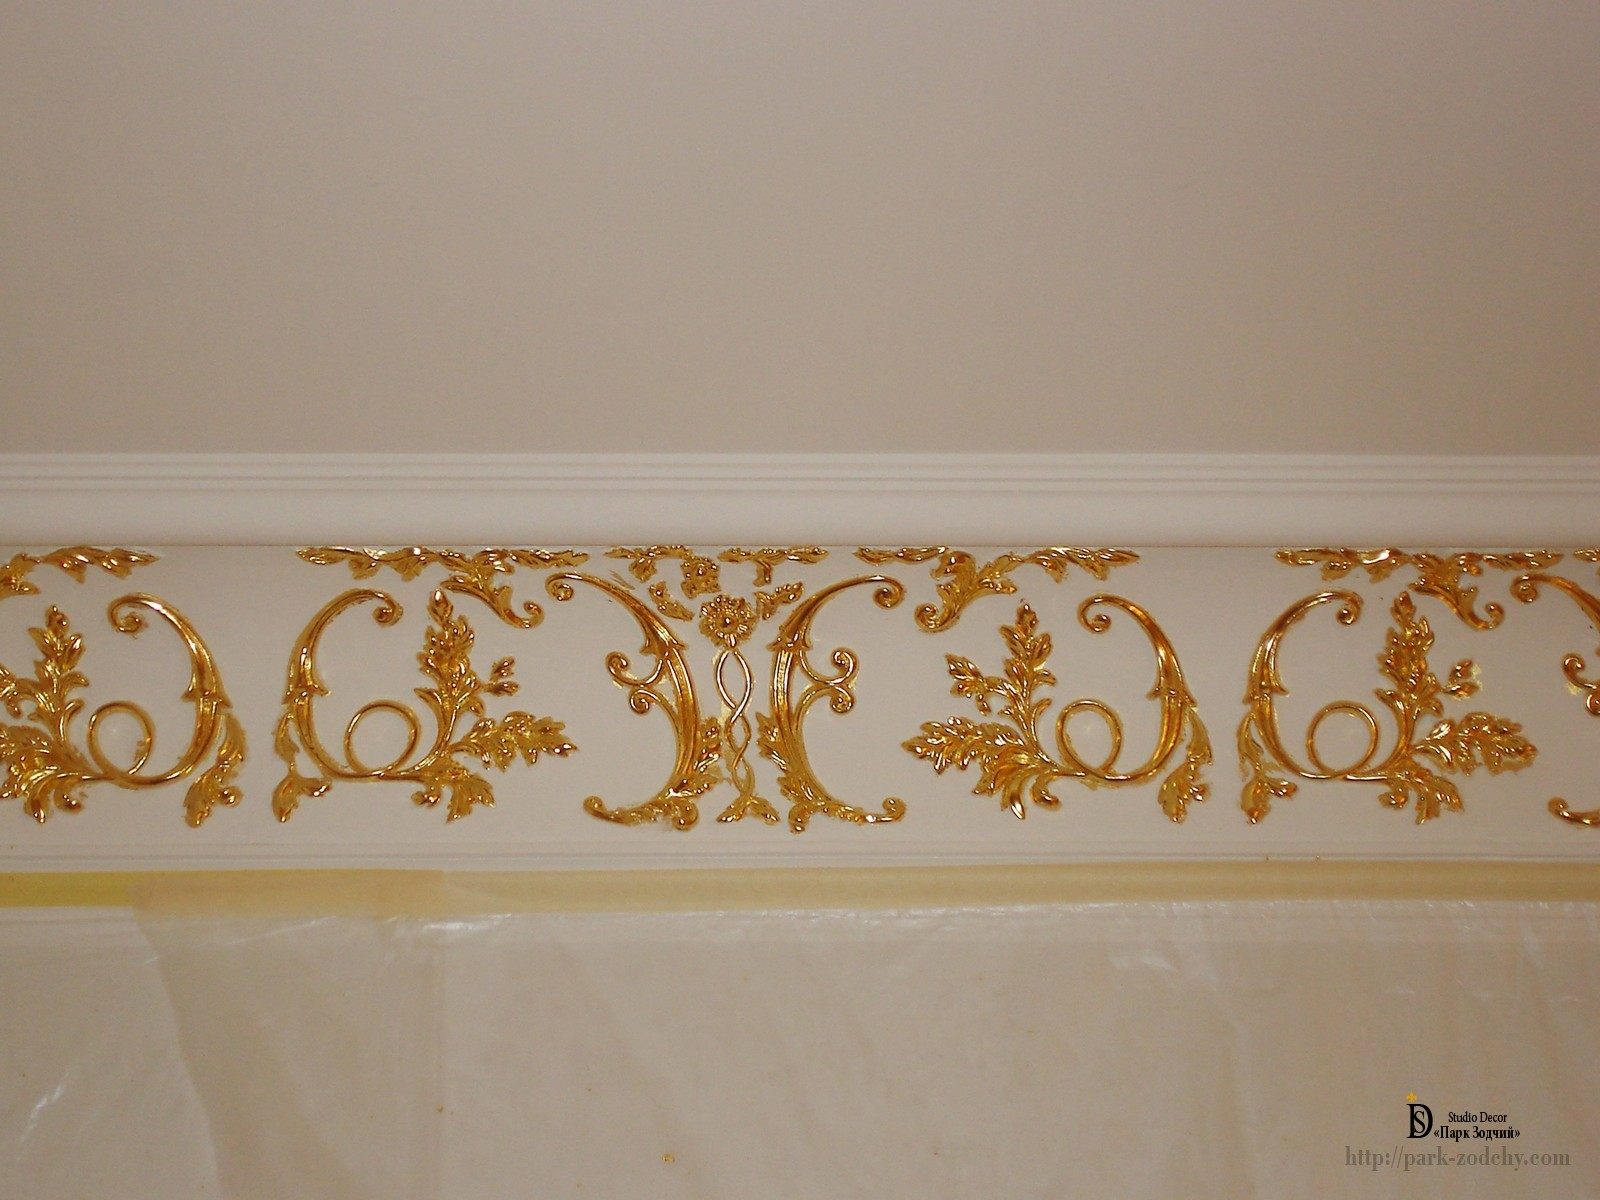 The item of plaster moldings with gold leaf gilding